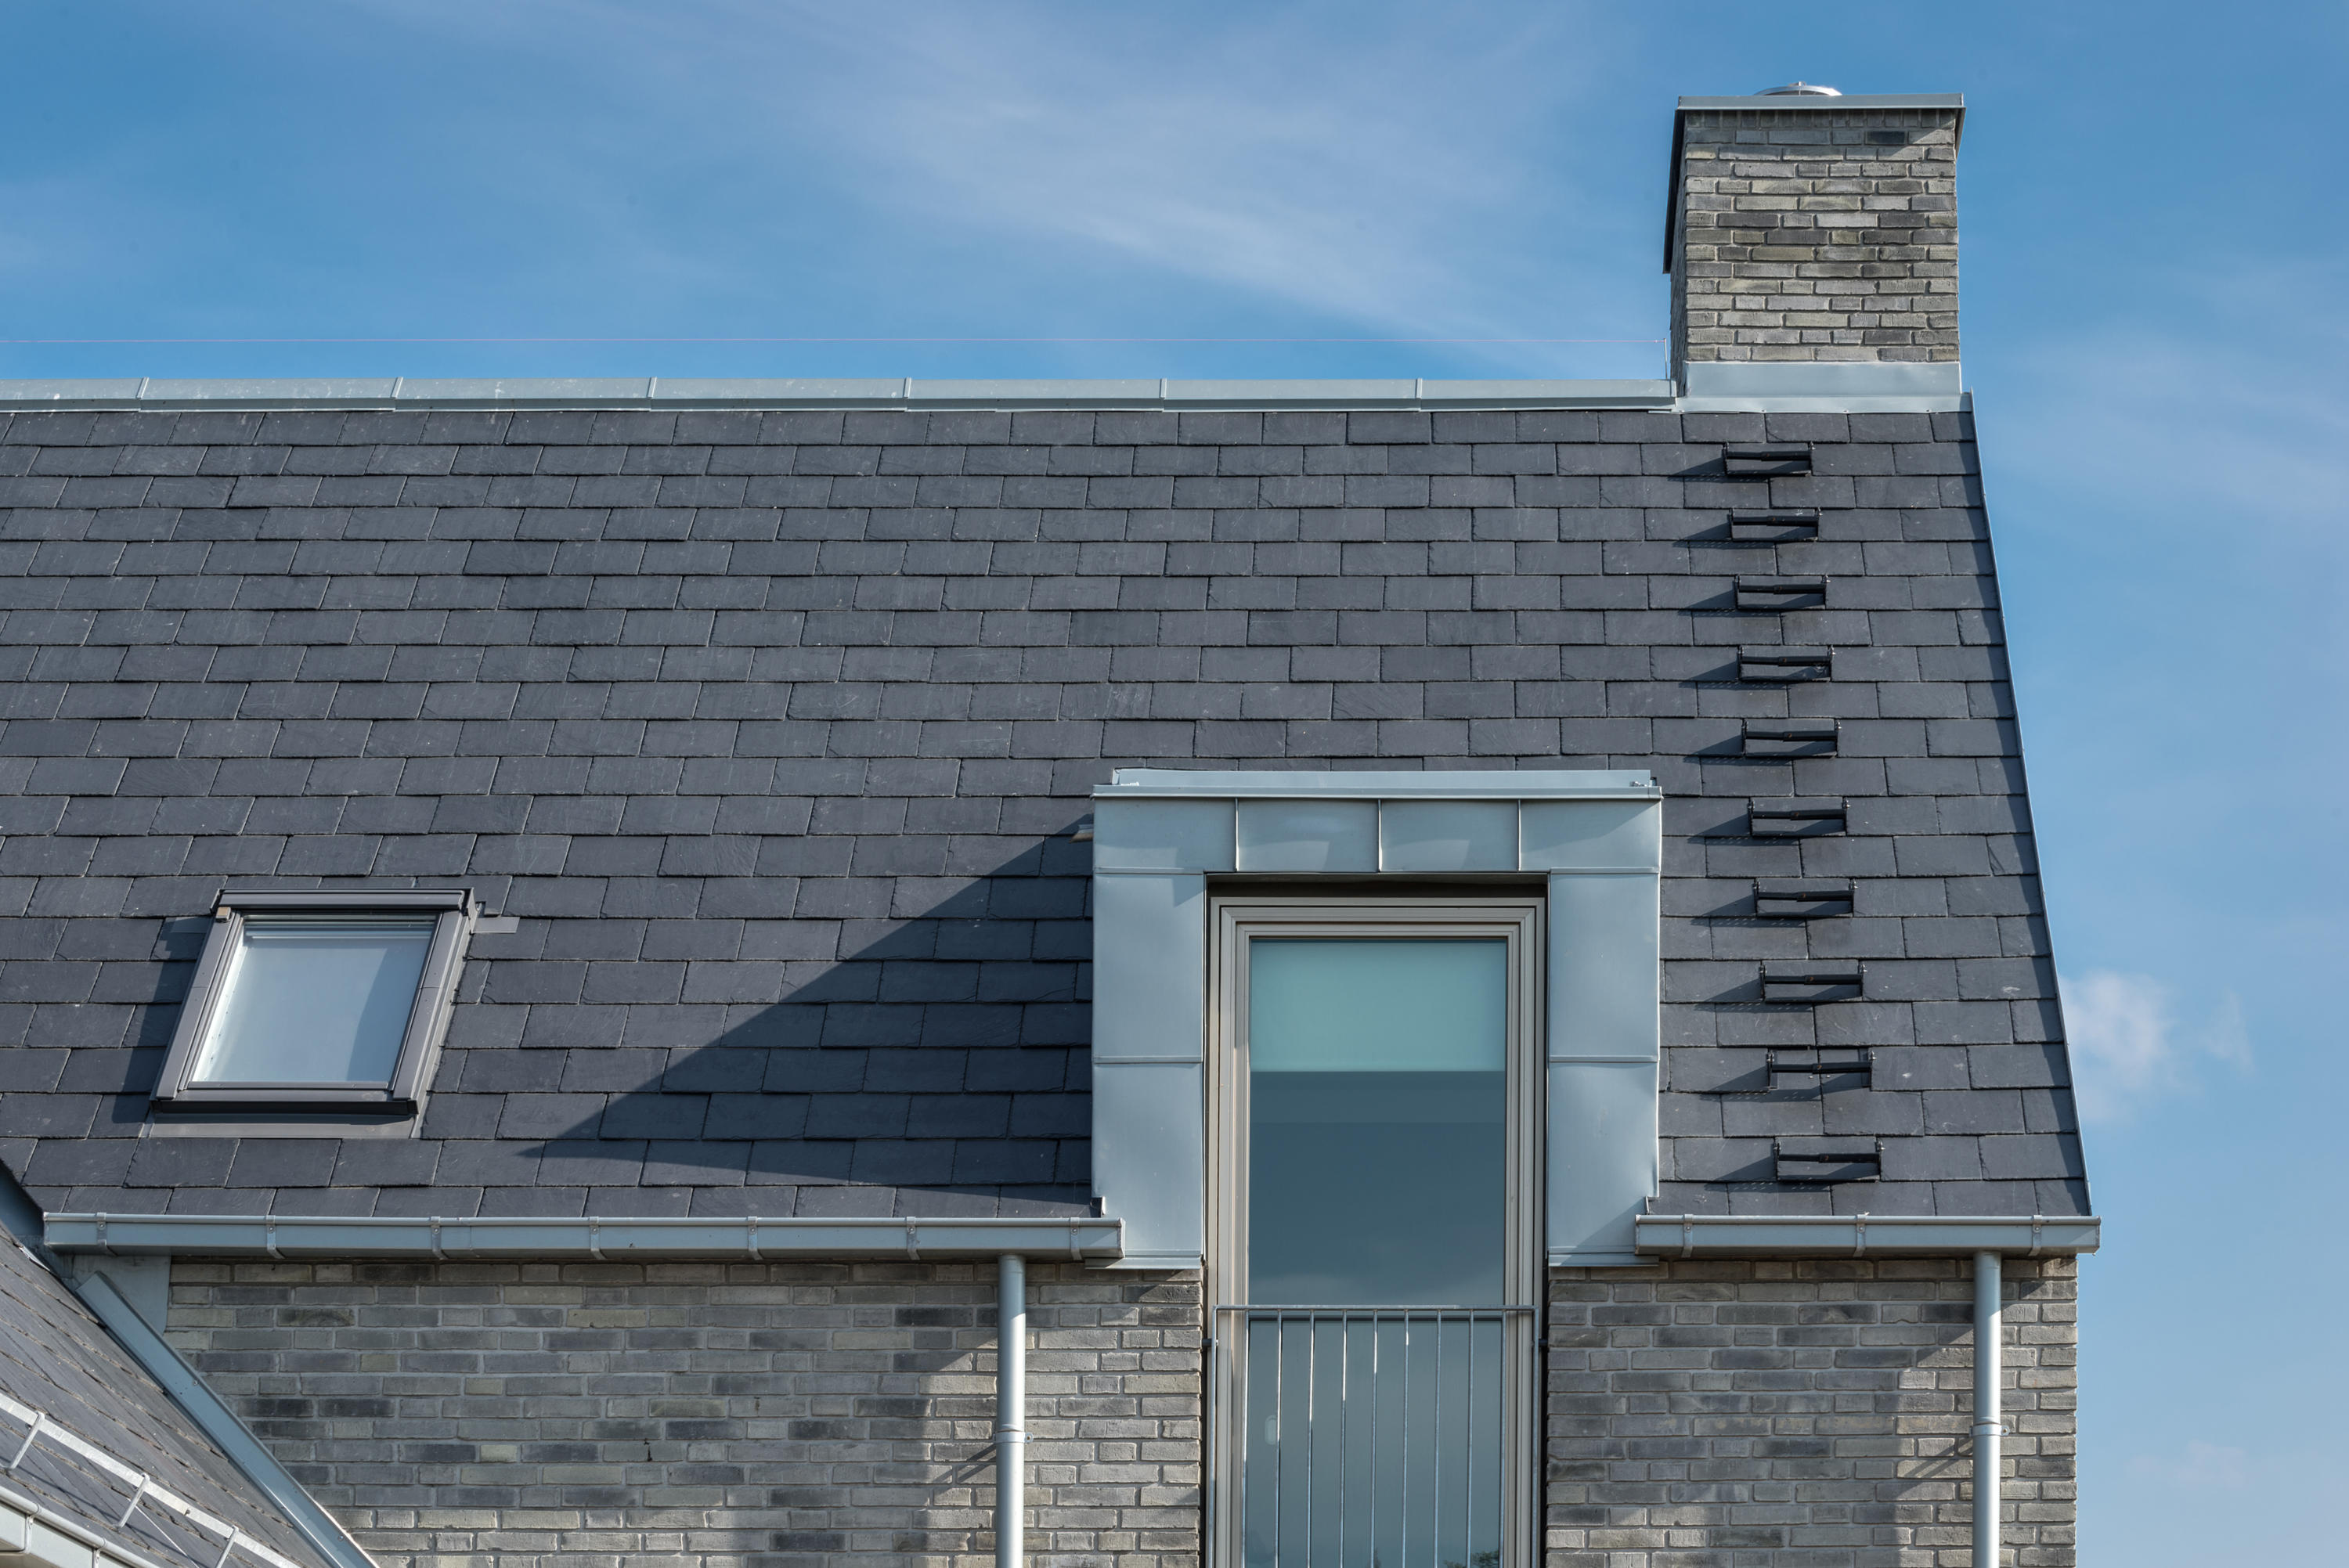 Thermoslate 174 Natural Stone Panels From Cupa Pizarras